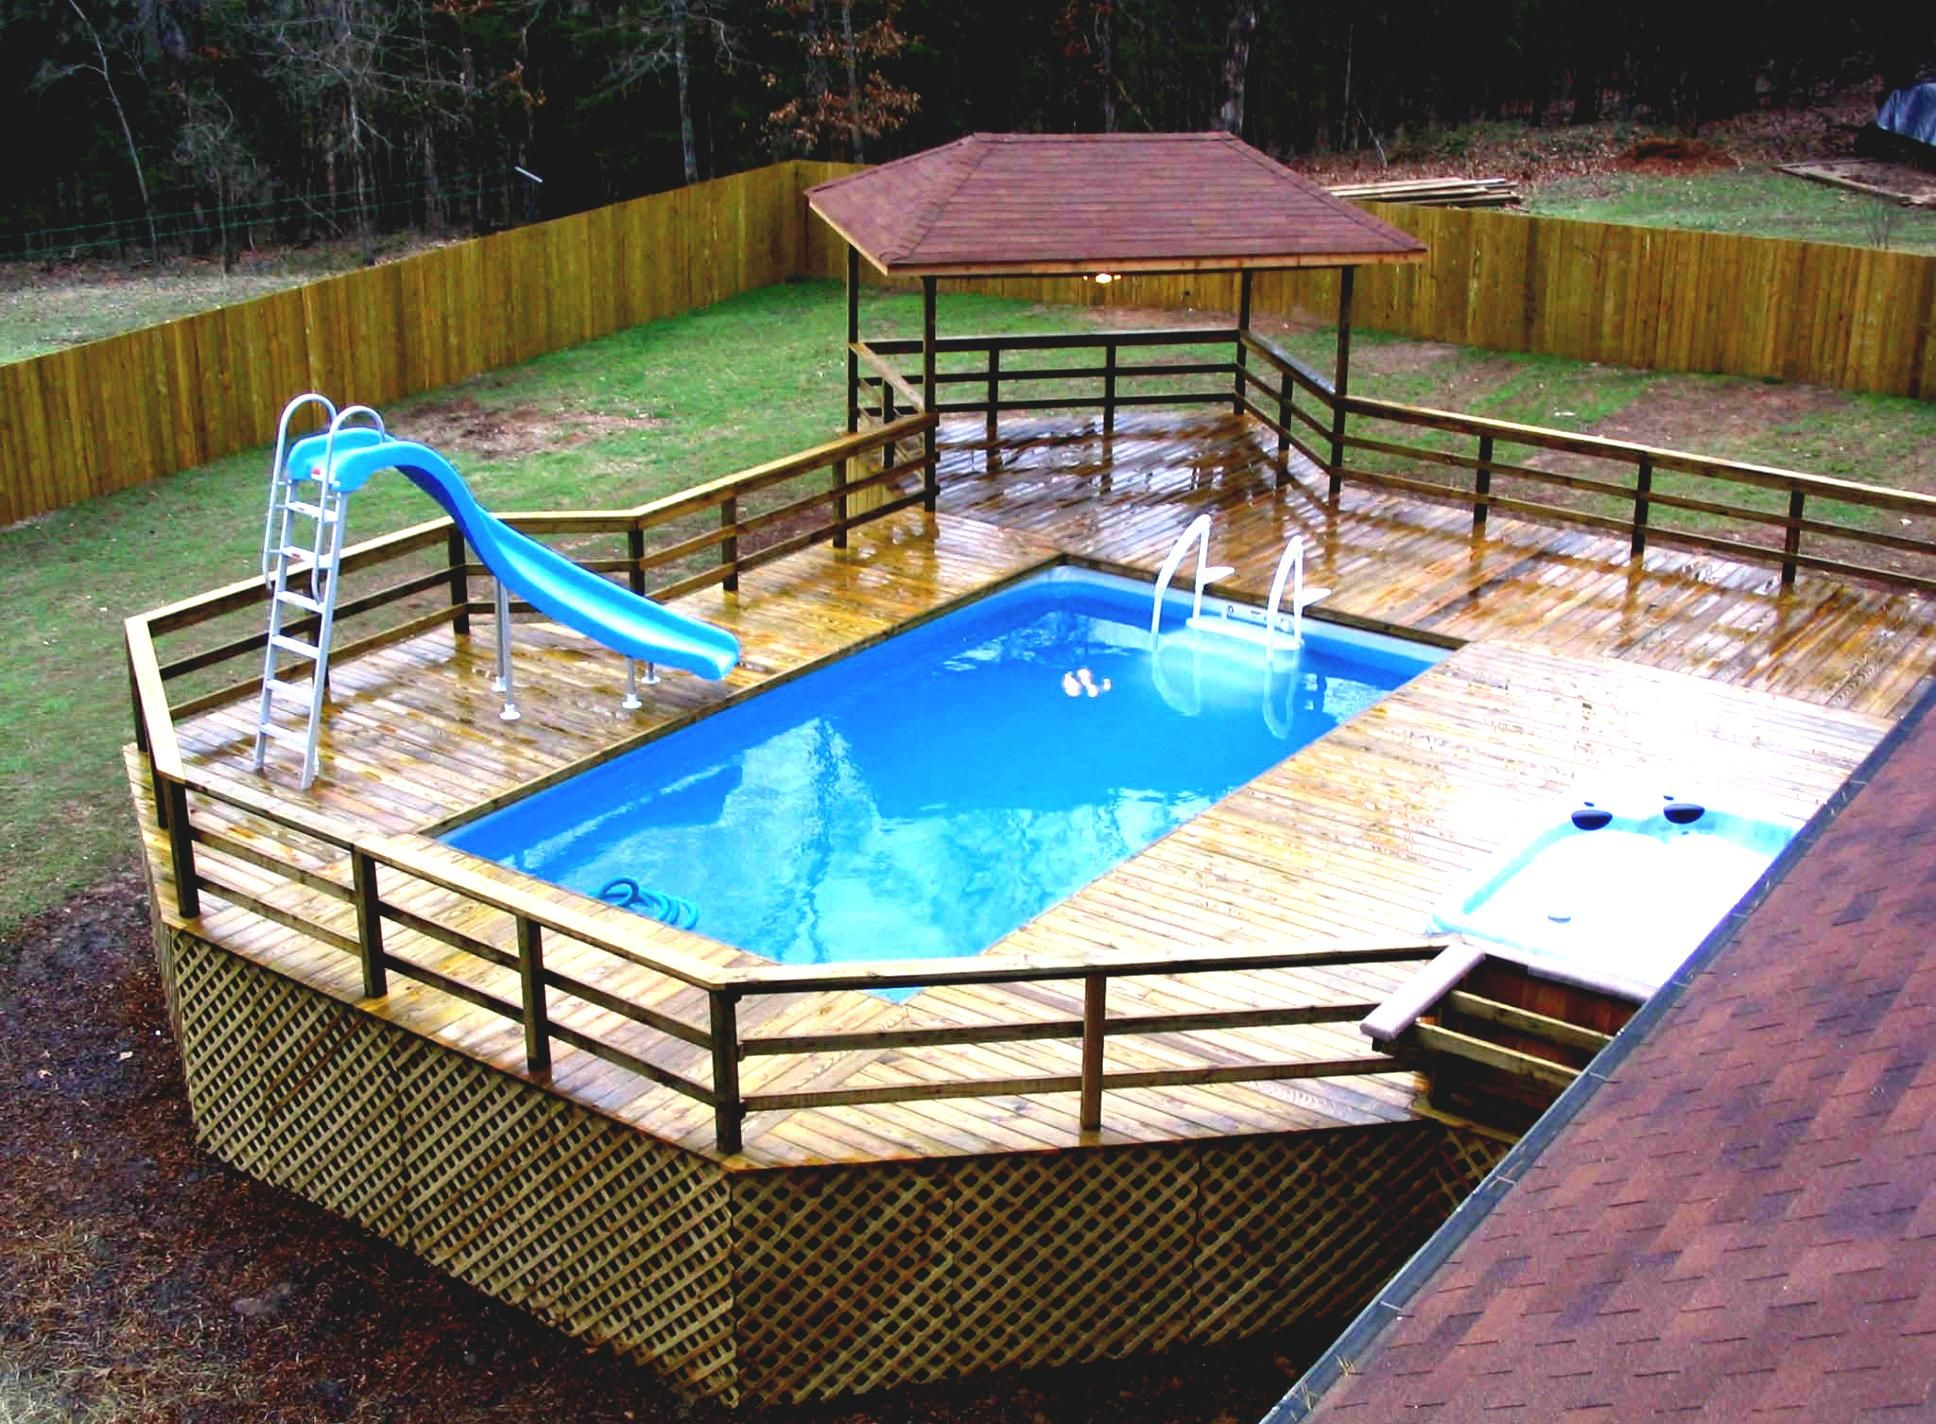 Intex above ground pool landscaping ideas pdf backyard for Swimming pool ideas